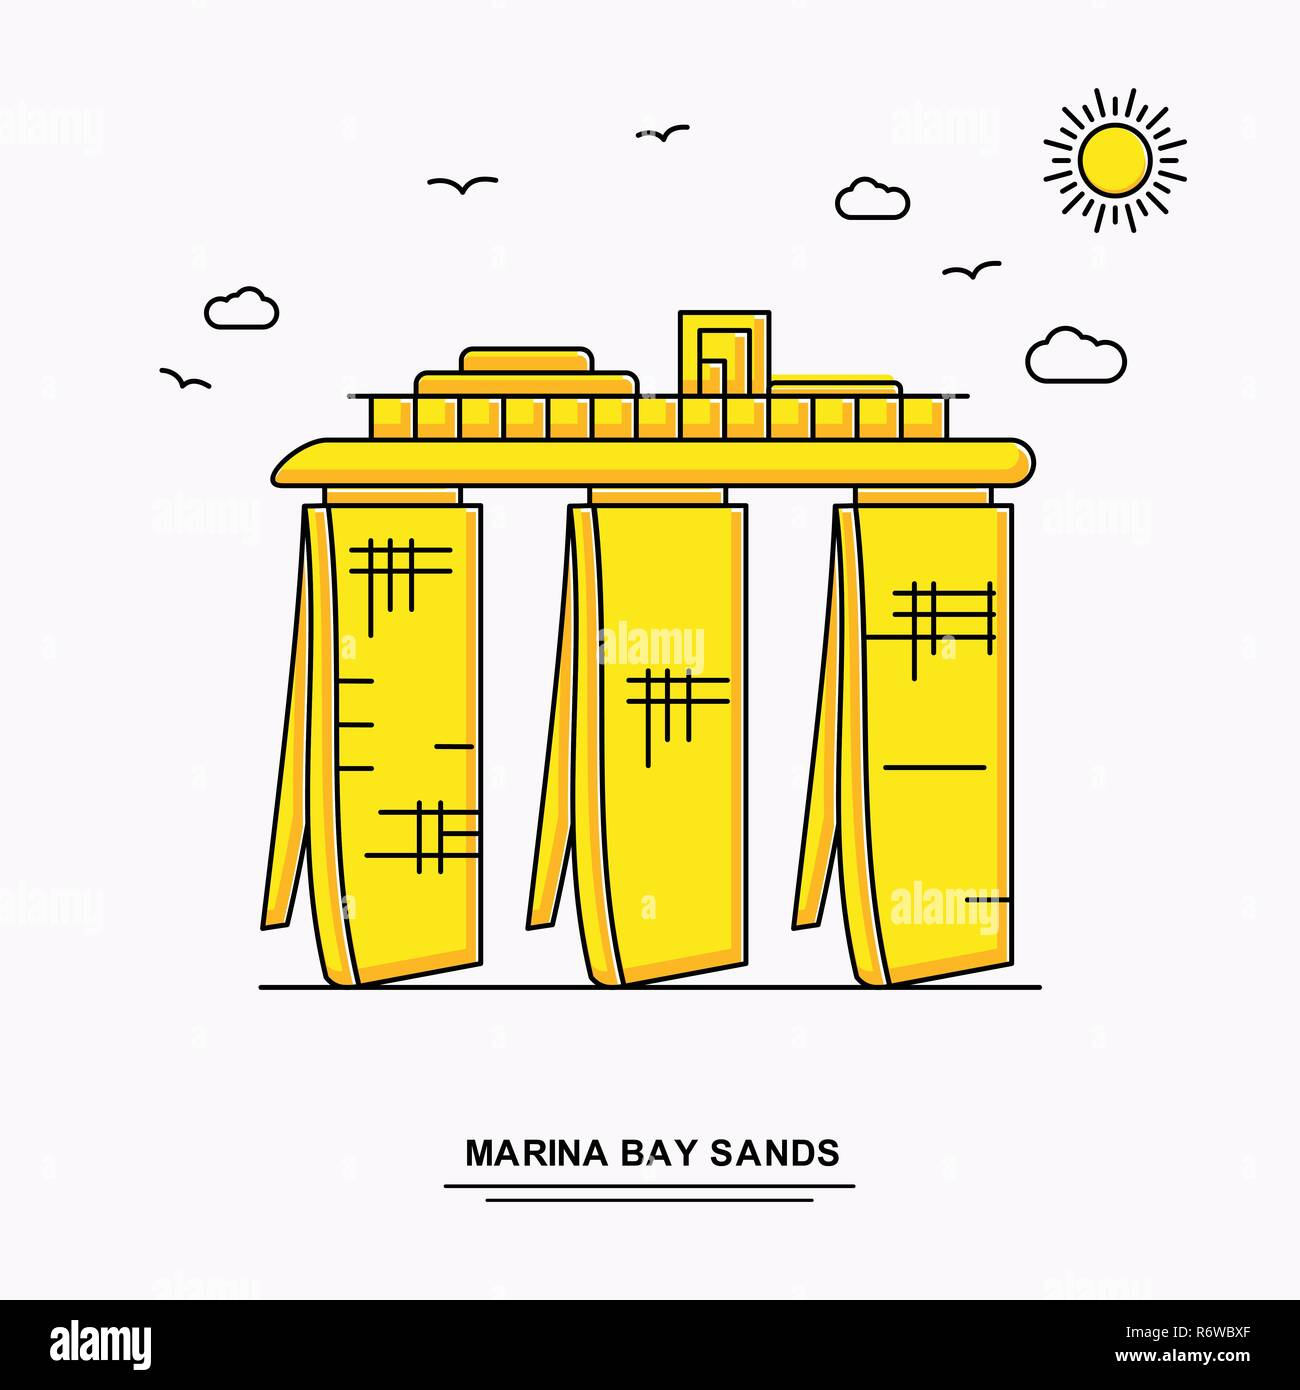 MARINA BAY SANDS Monument Poster Template. World Travel Yellow illustration Background in Line Style with beauture nature Scene - Stock Image